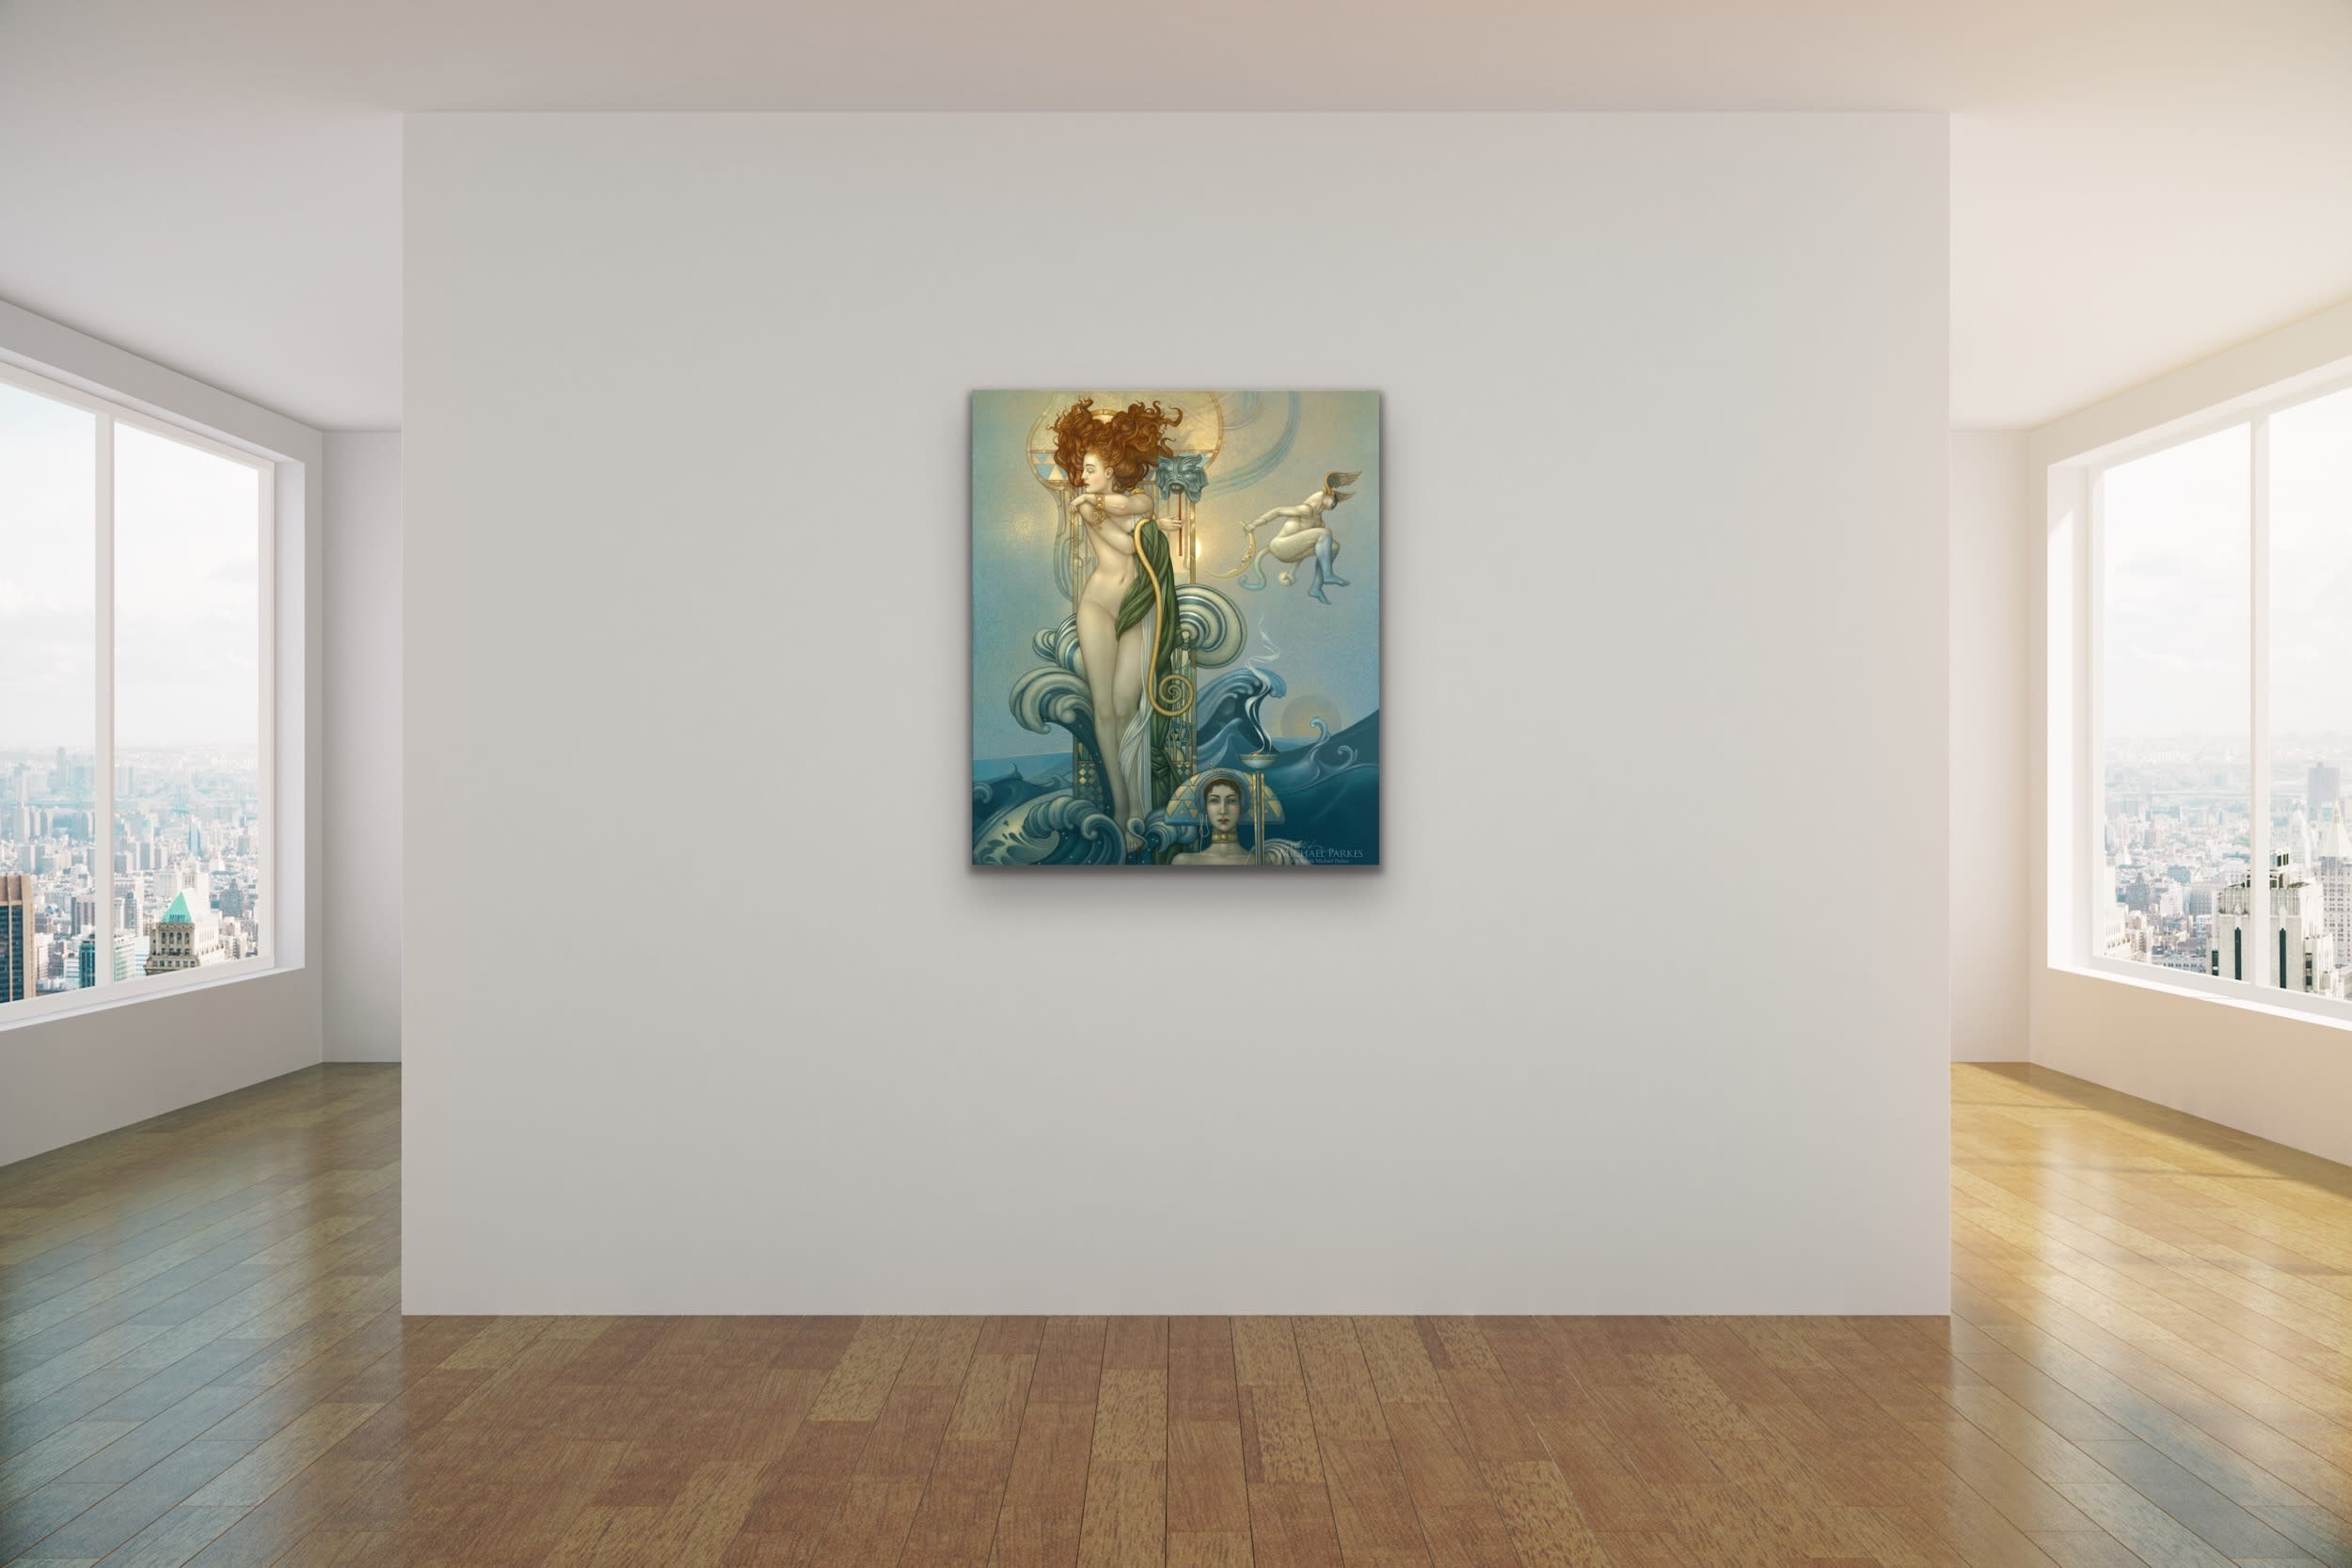 <div class='title'>           Michael Parkes   Classical Contemporary New Art Gallery Lahaina Front Street Maui Evo Famous Metaphorical Magical Surrealism Figurative Angels Mermaids Goblins Fairies 41         </div>